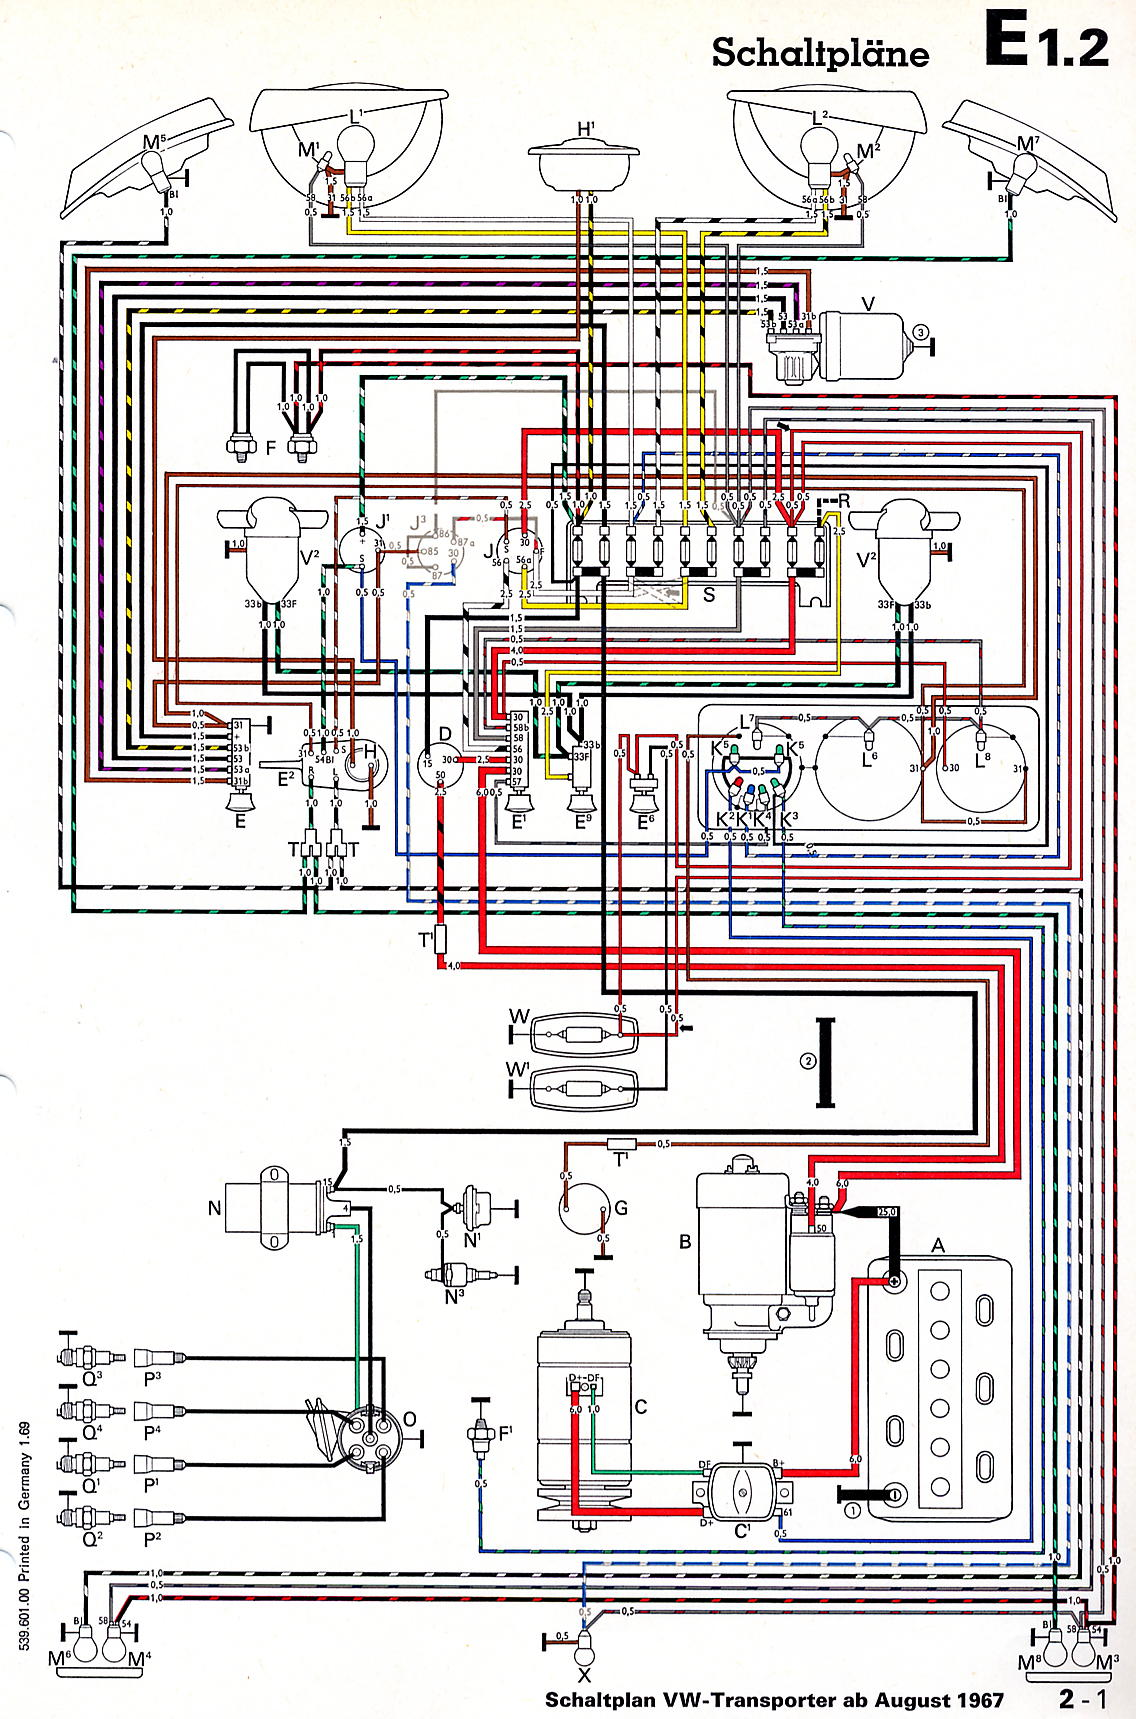 Transporter_from_August_1967 vintagebus com vw bus (and other) wiring diagrams dune buggy wiring schematic at nearapp.co